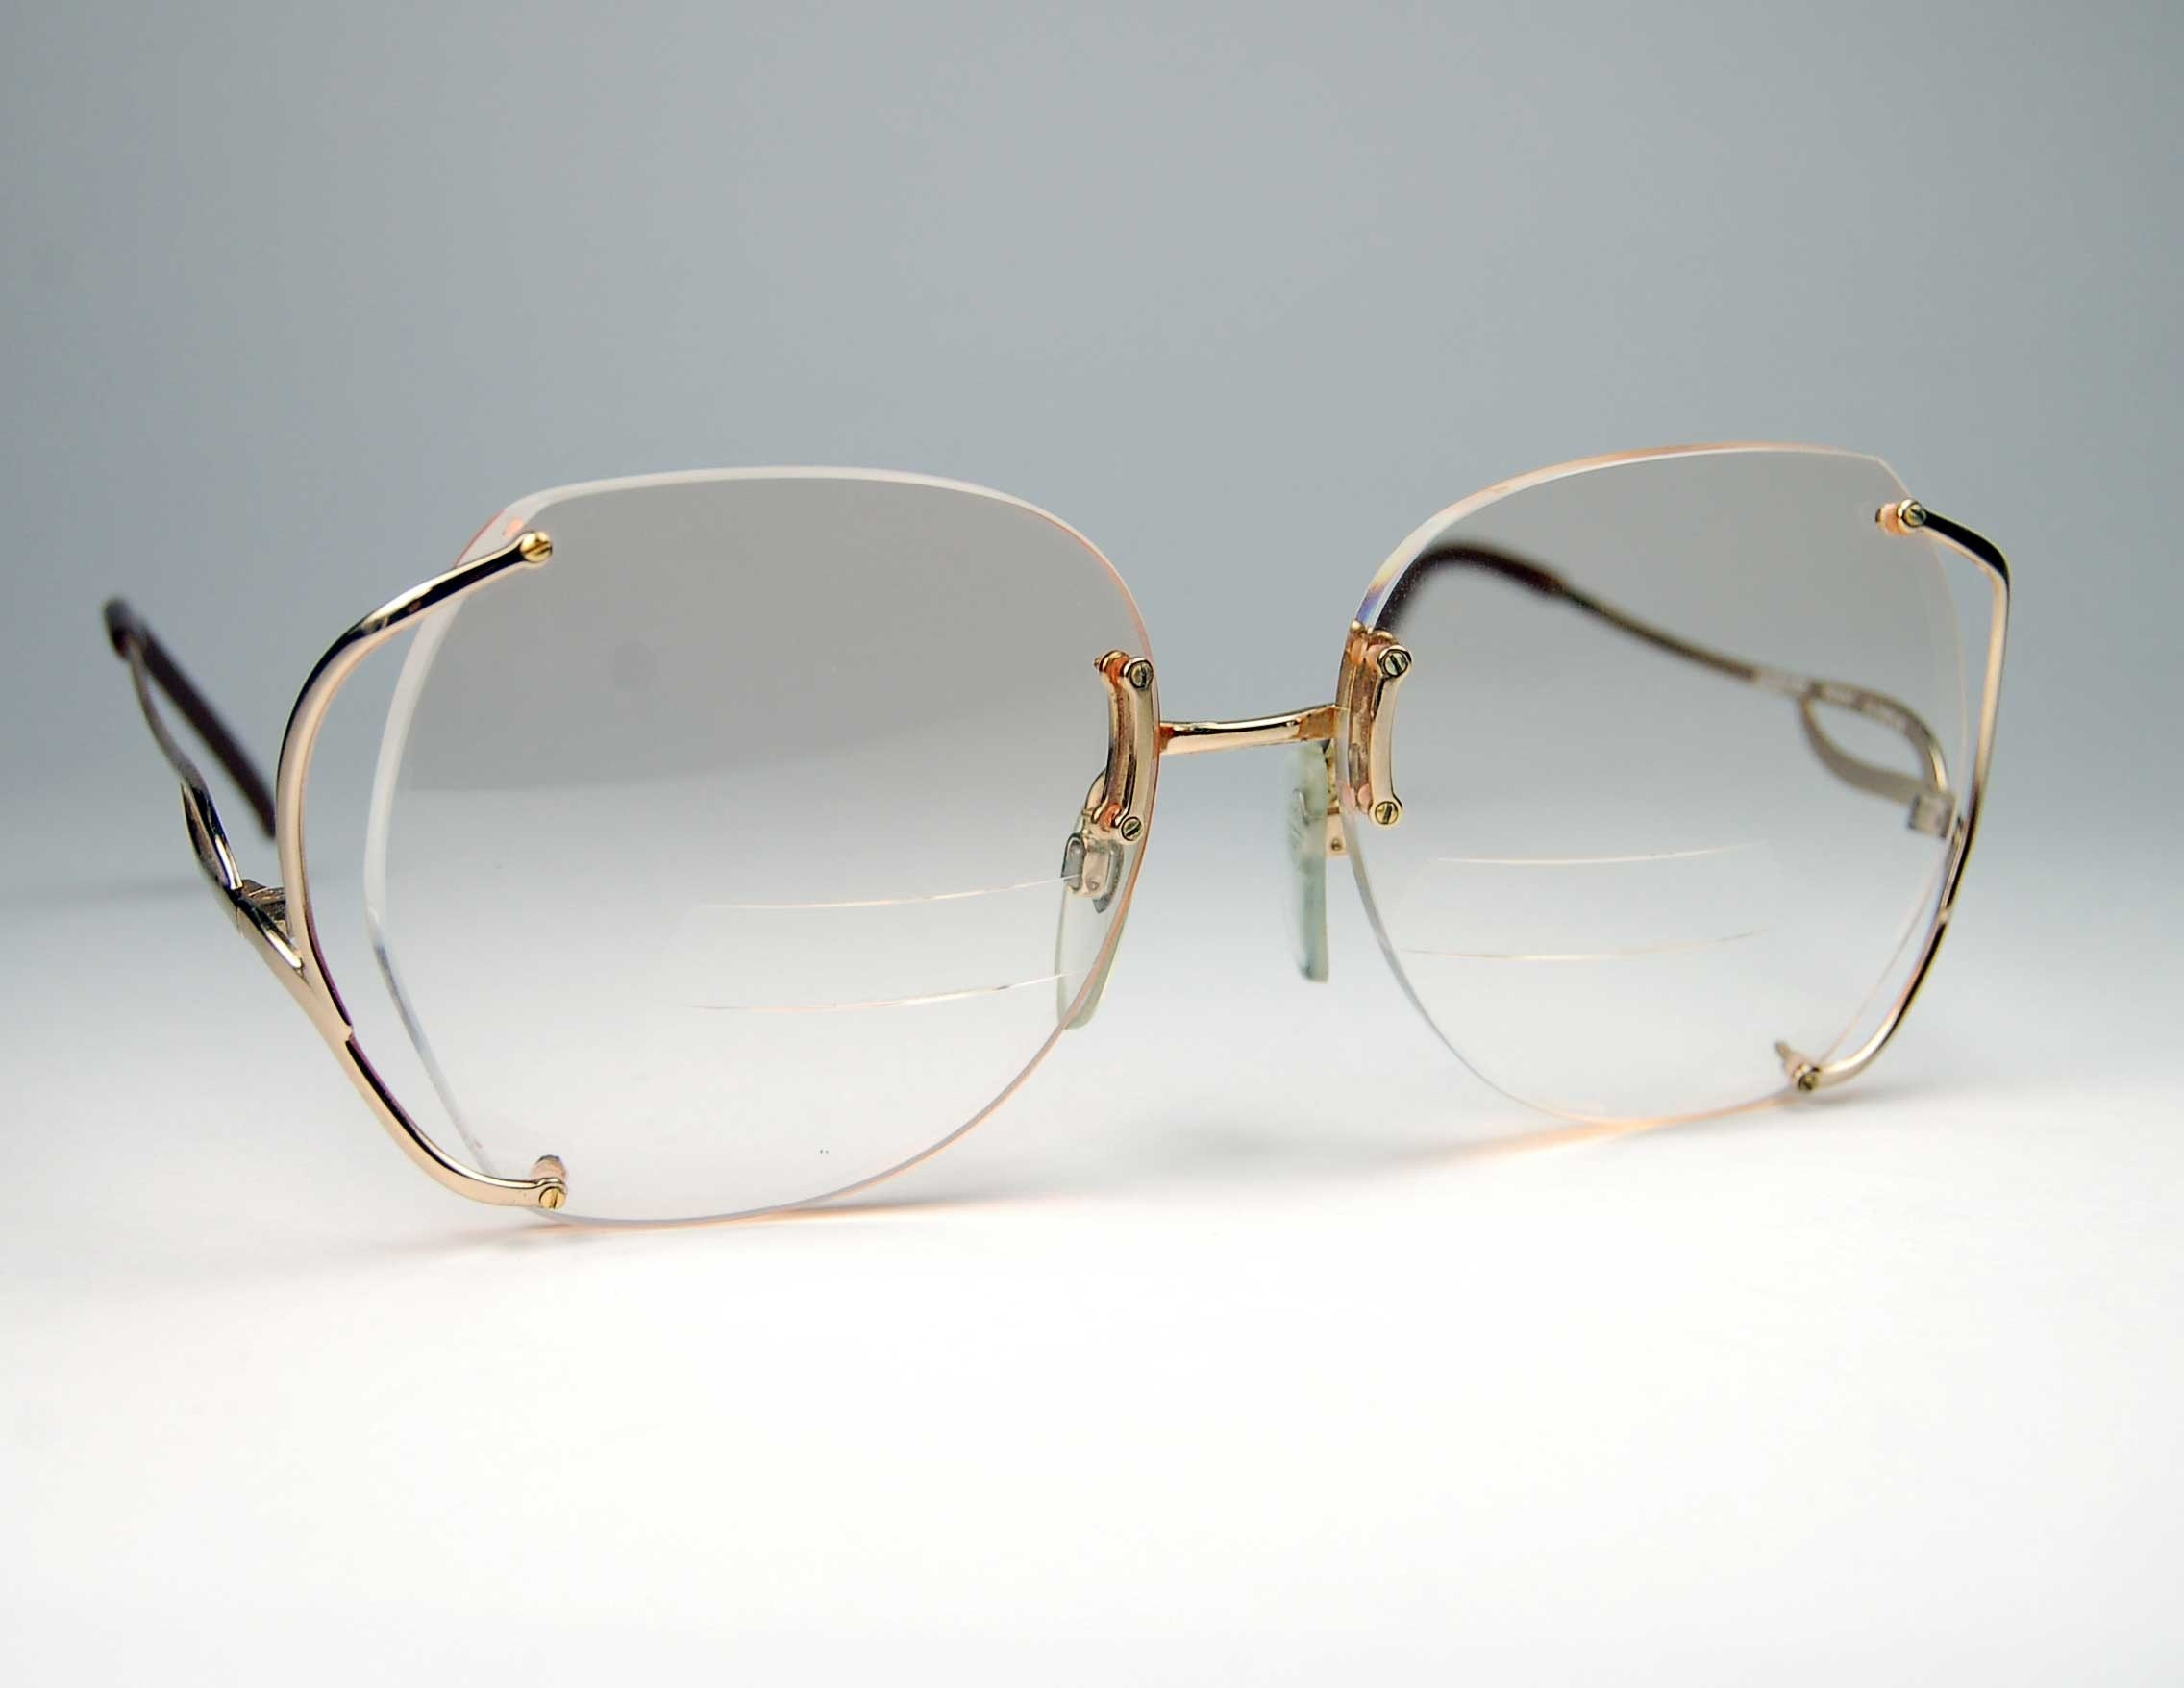 Oversized Gold Frame Sunglasses : Vintage Luxottica Gold Rimless Eyeglass Frames made in Italy